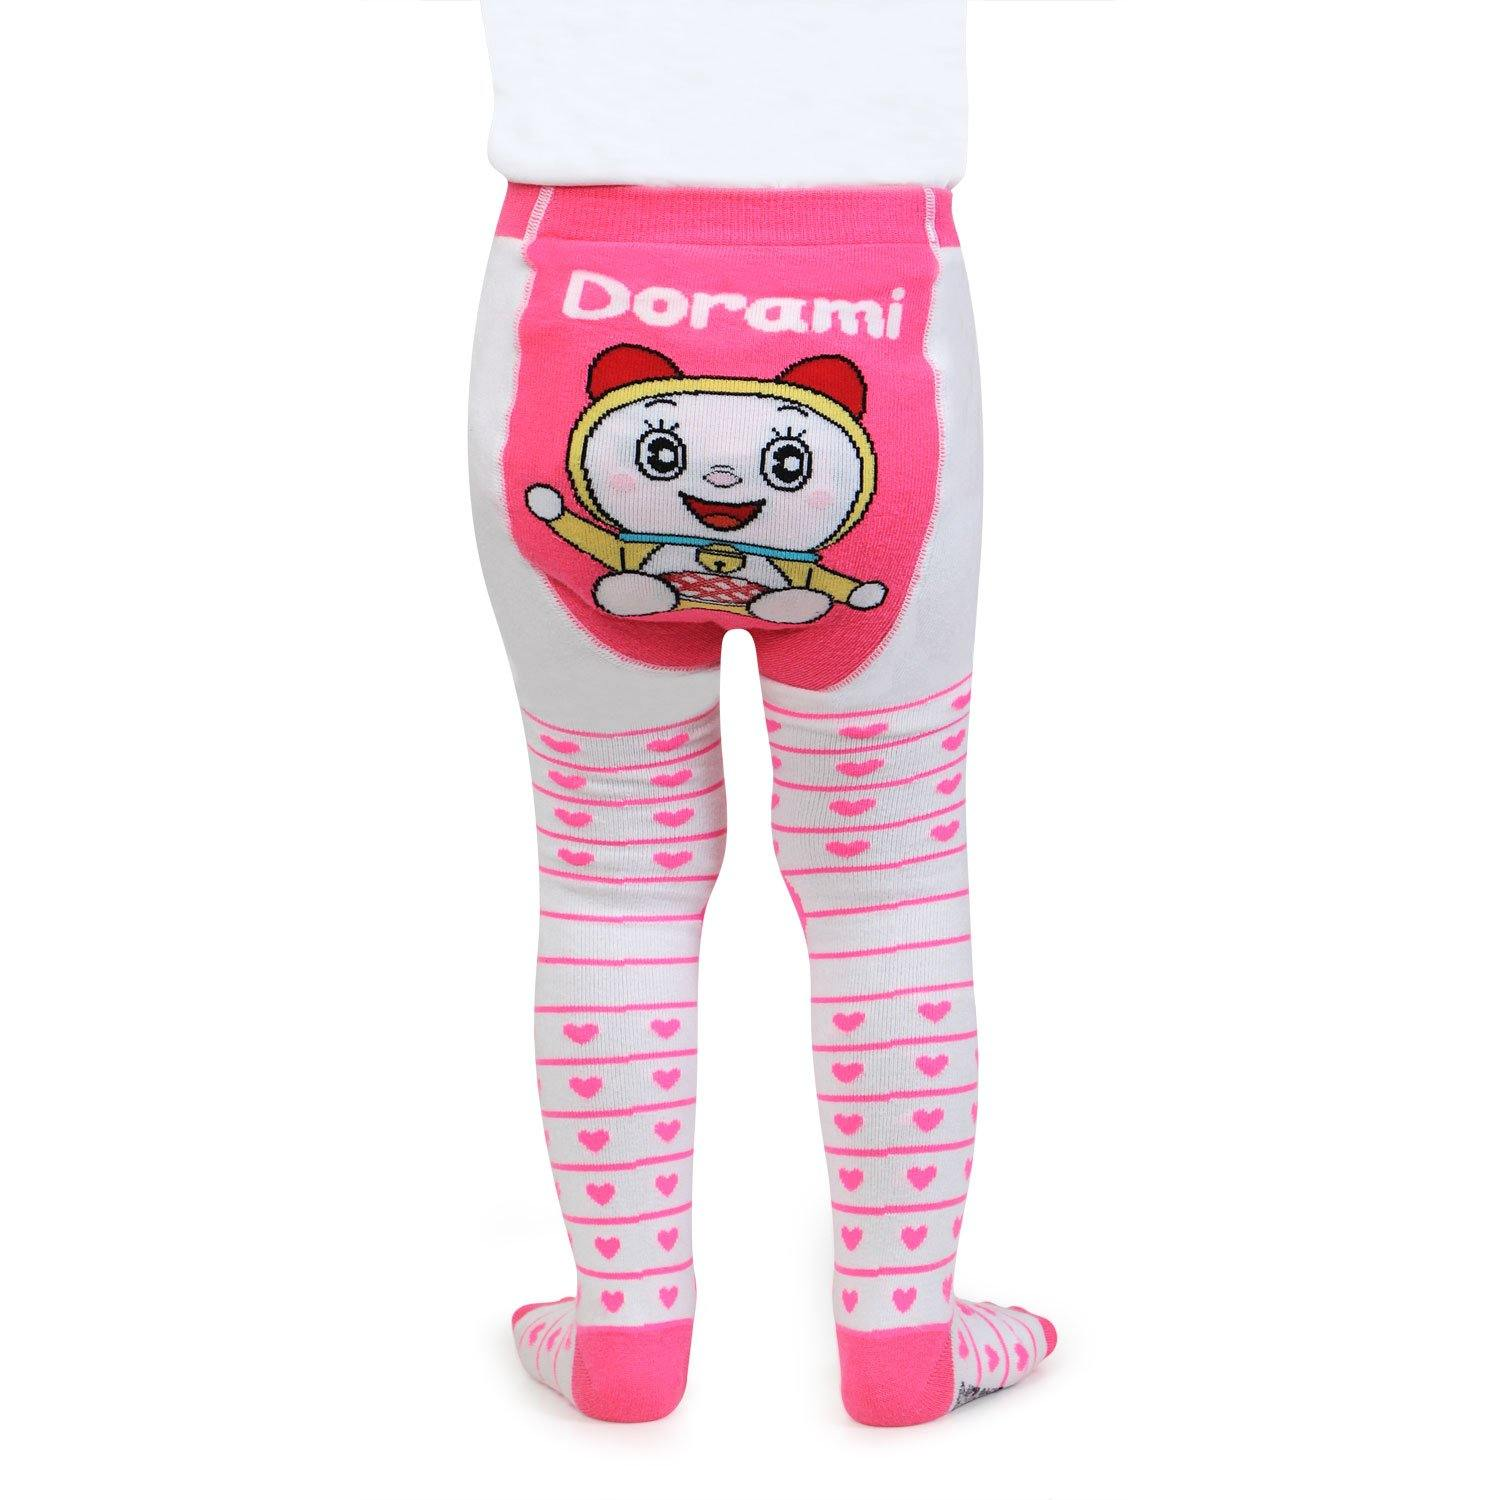 Doraemon Knitted Baby Boy Tight - White - Bonjour Group